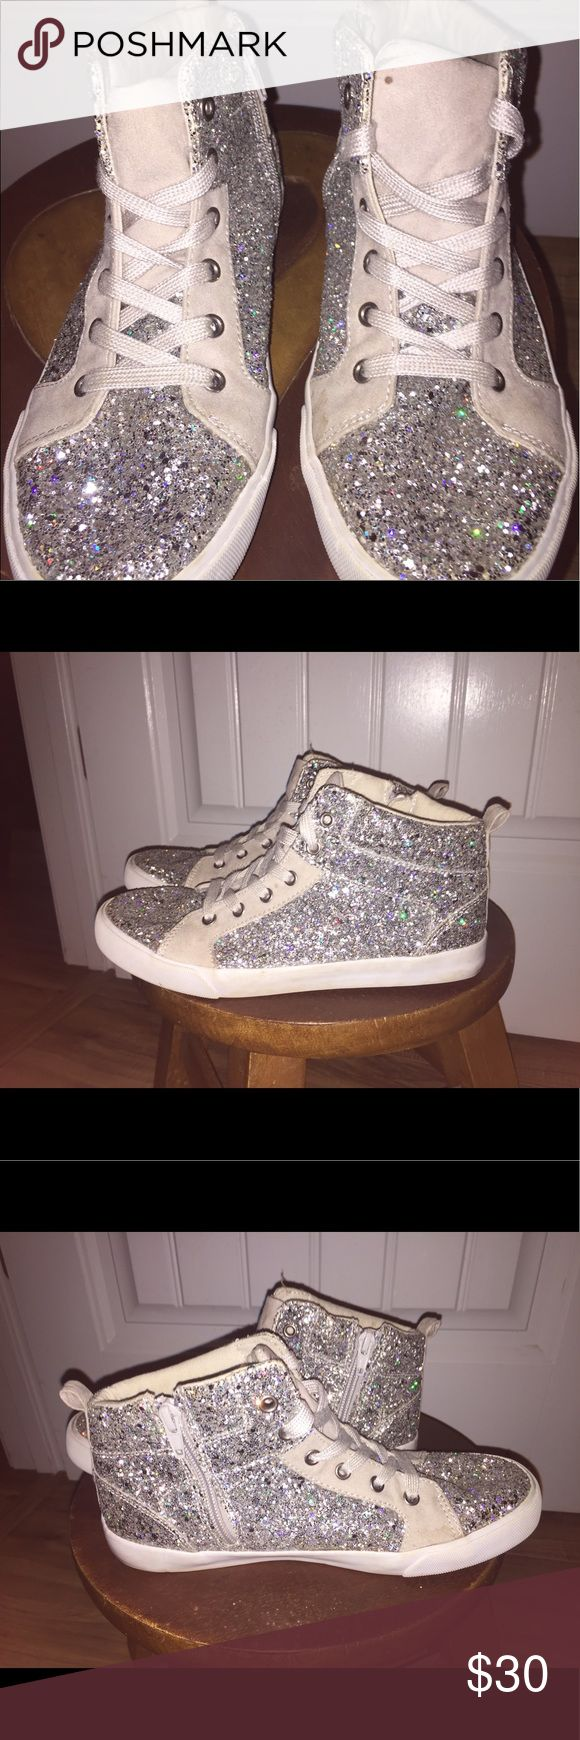 GAP high top sneakers GAP high top sneakers. silver Glitter. Only worn a few times GAP Shoes Sneakers